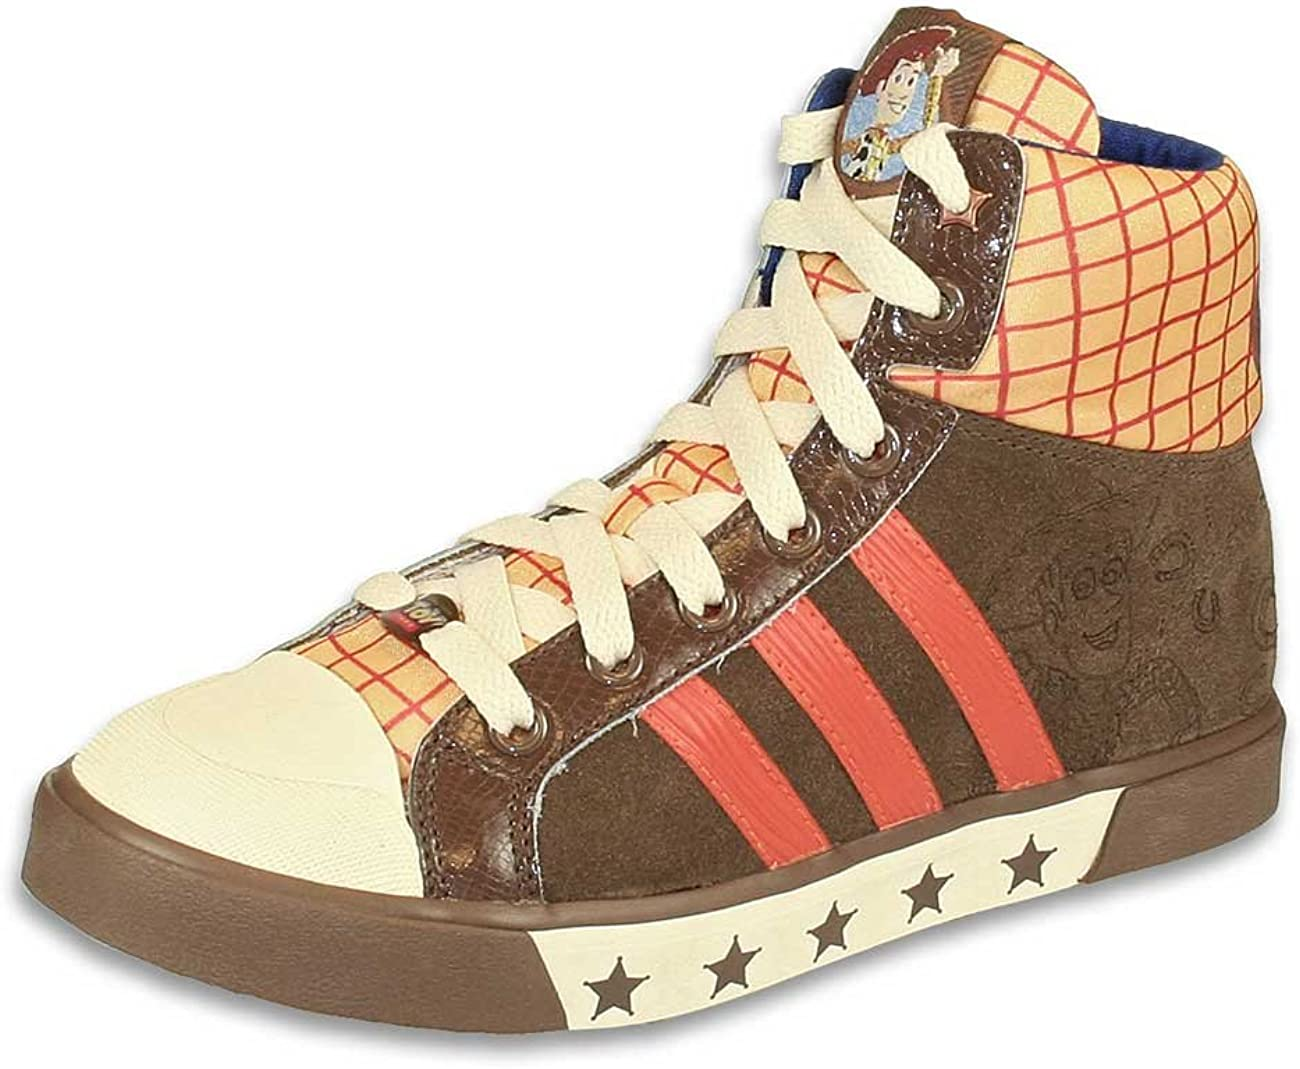 chaussure adidas toy story